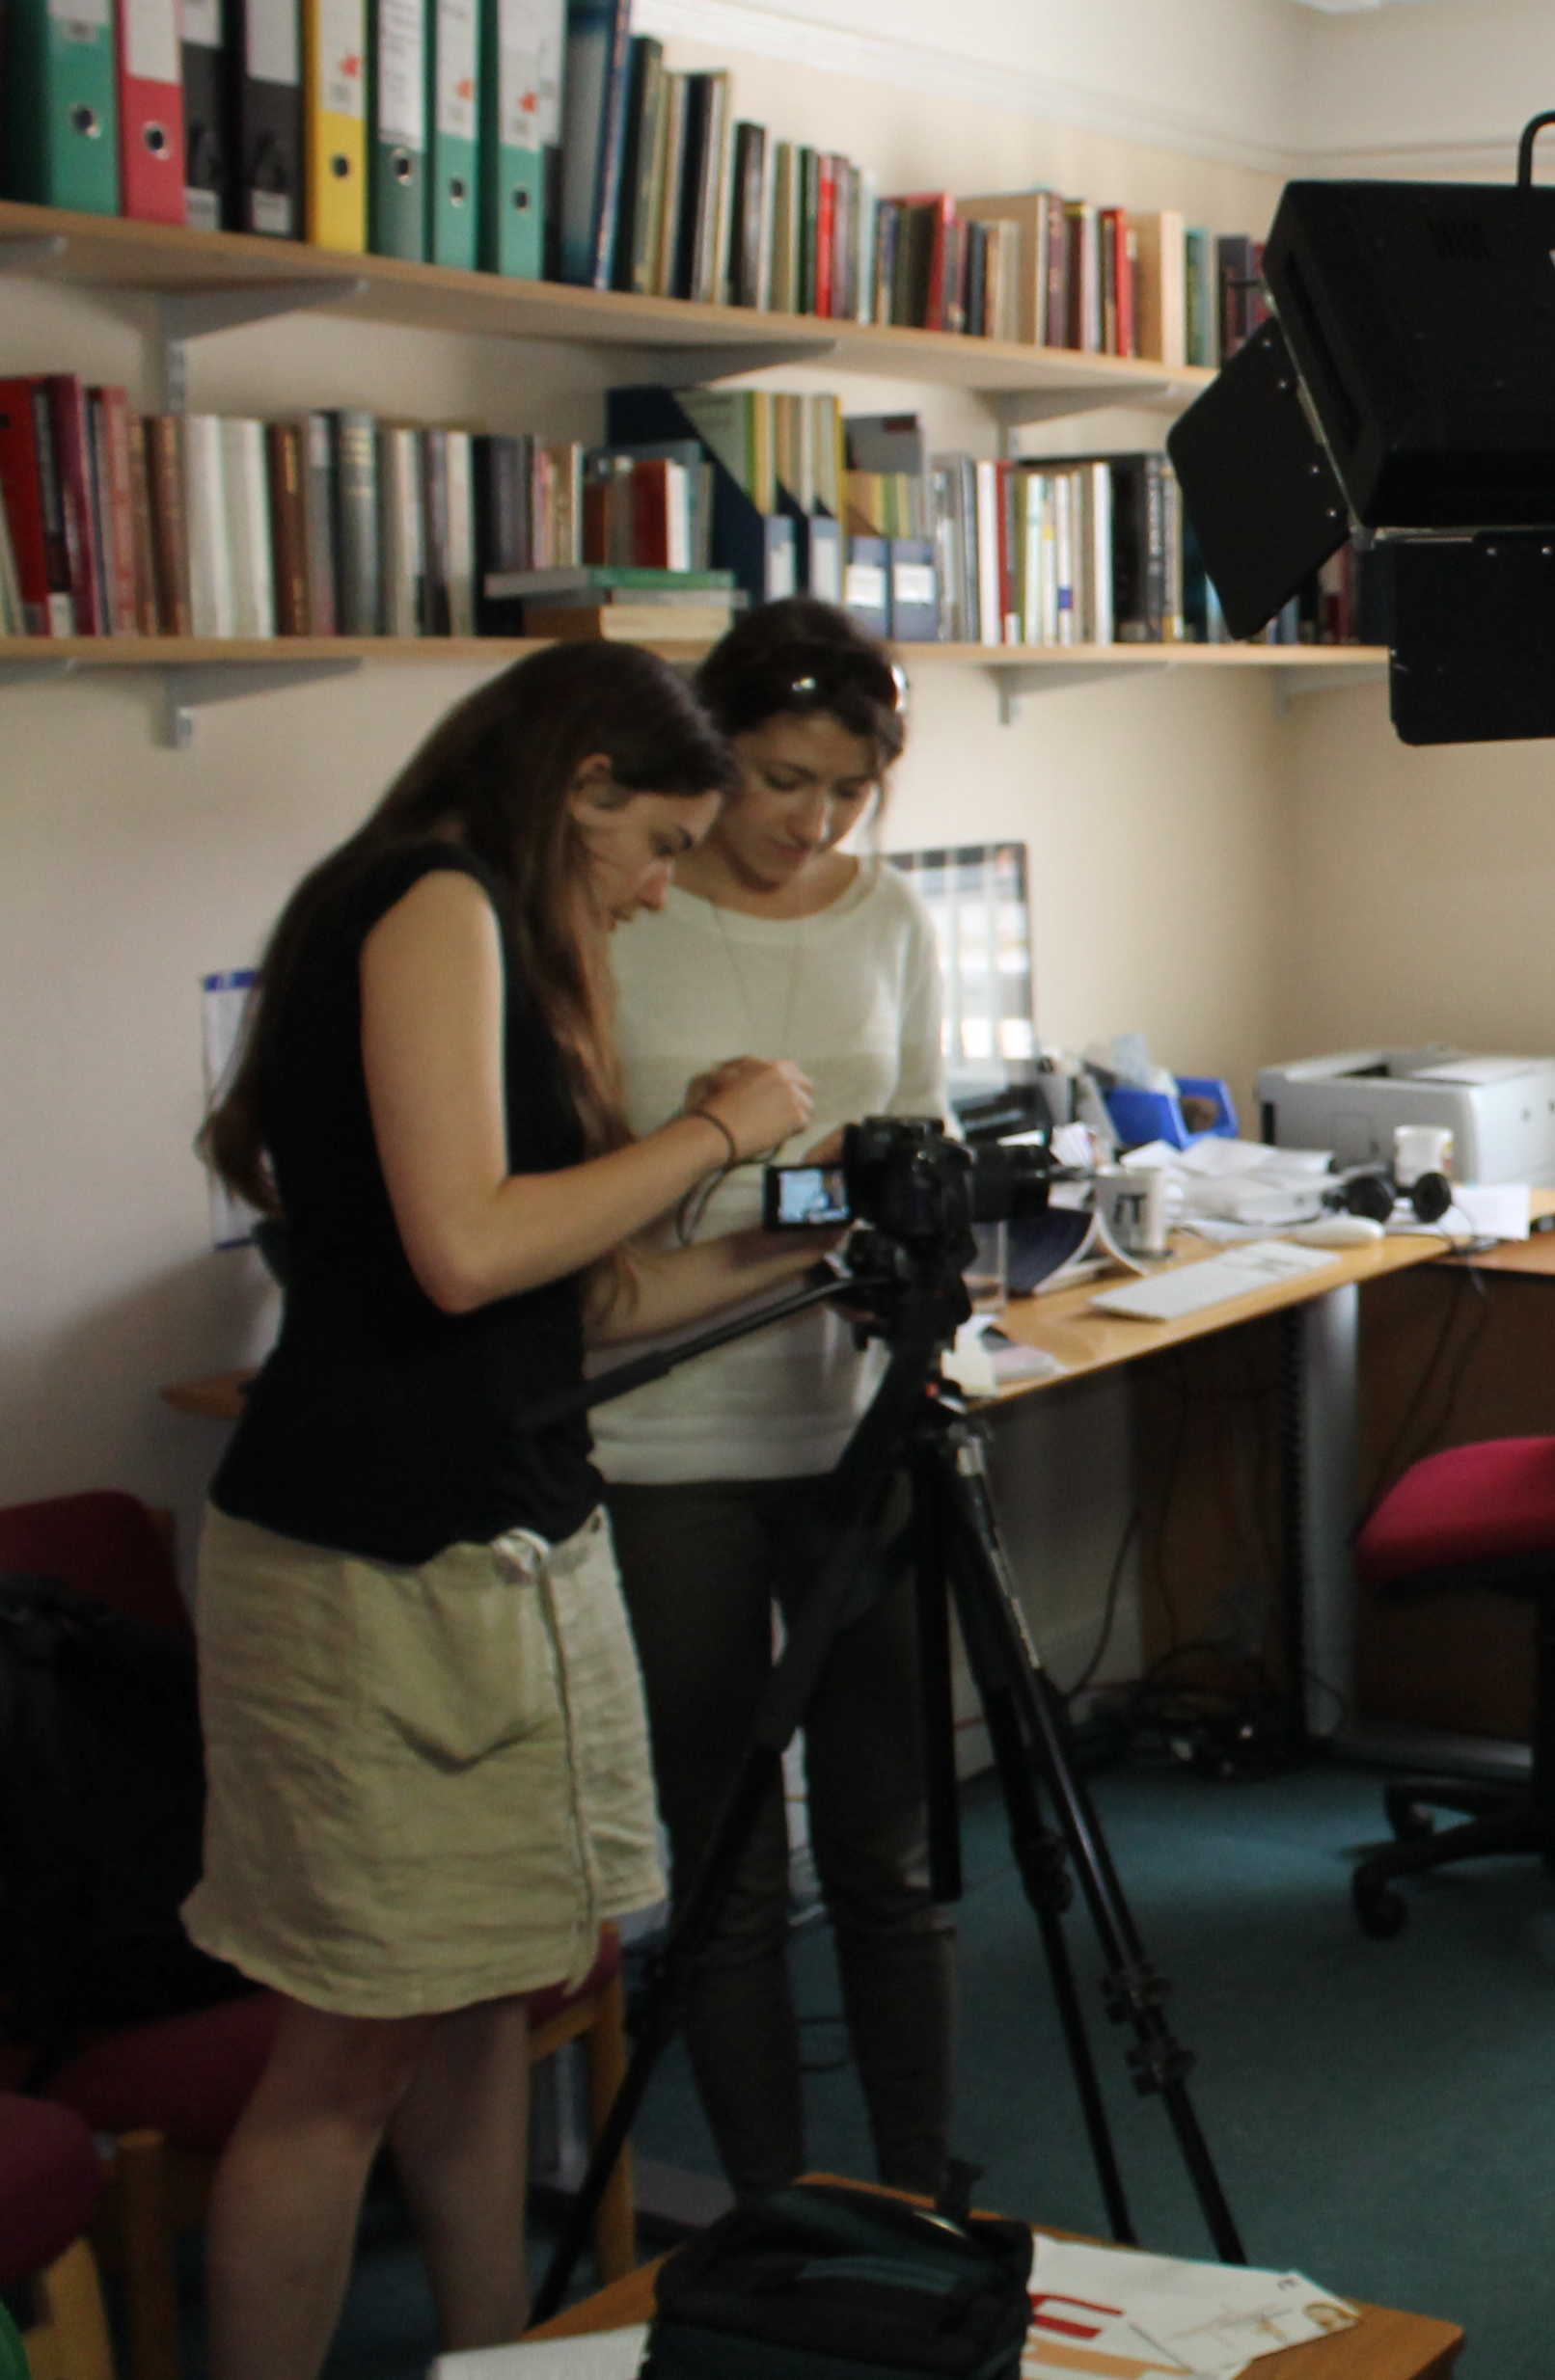 IT Services internship: Suzy and Adelina setting up for an interview